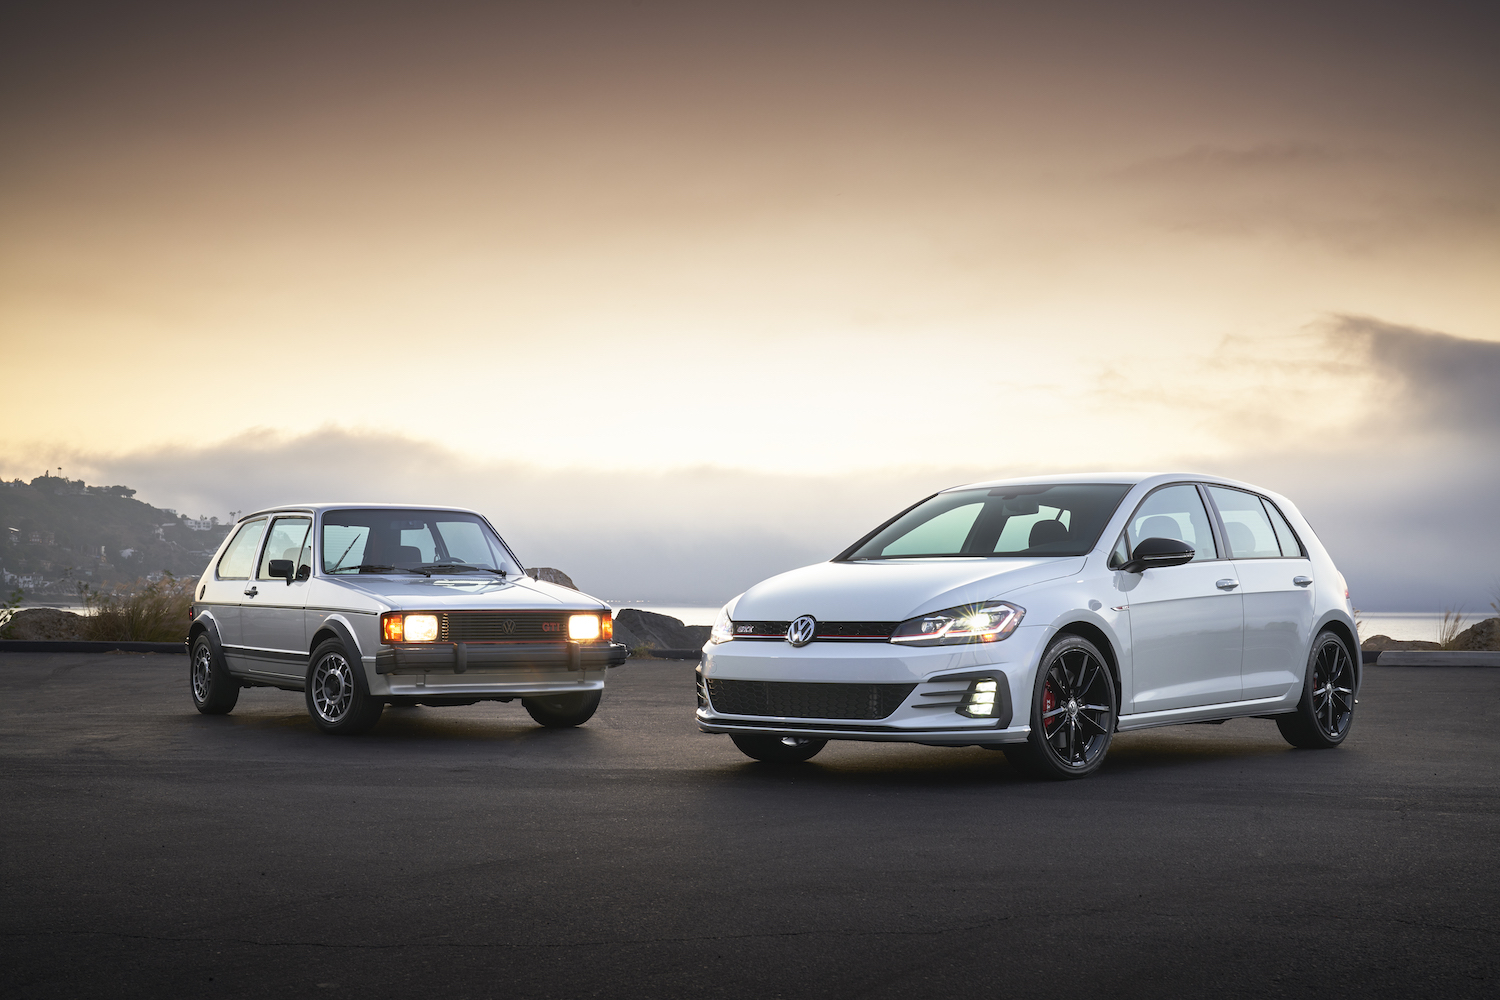 1984 Mk1 Rabbit with 2019 GTI Rabbit Edition